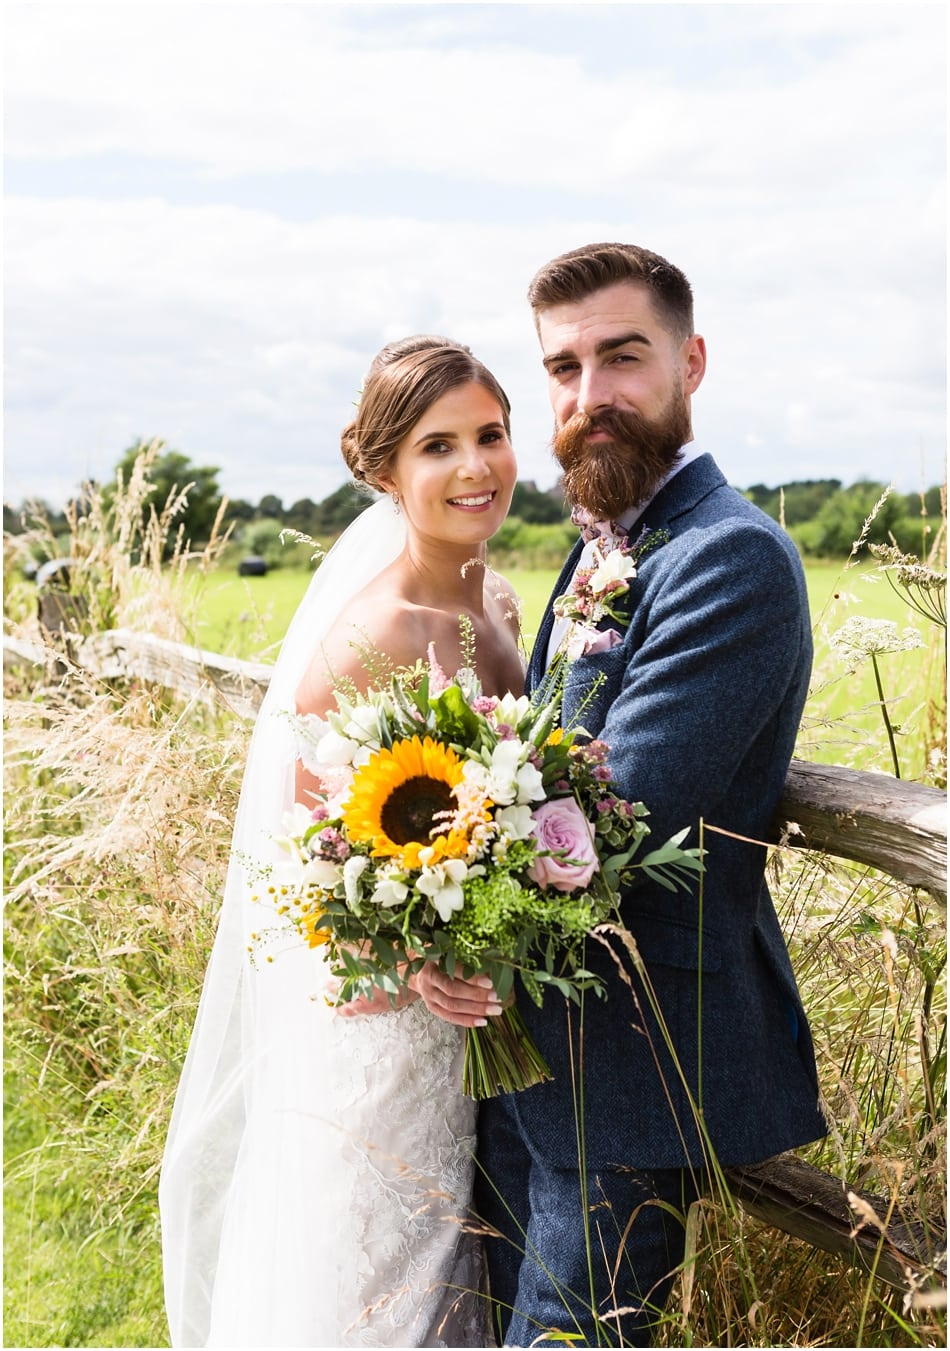 Groom with beard and wearing a dickie bow and Bride with rustic bouquet with sunflowers at Shustoke Barn